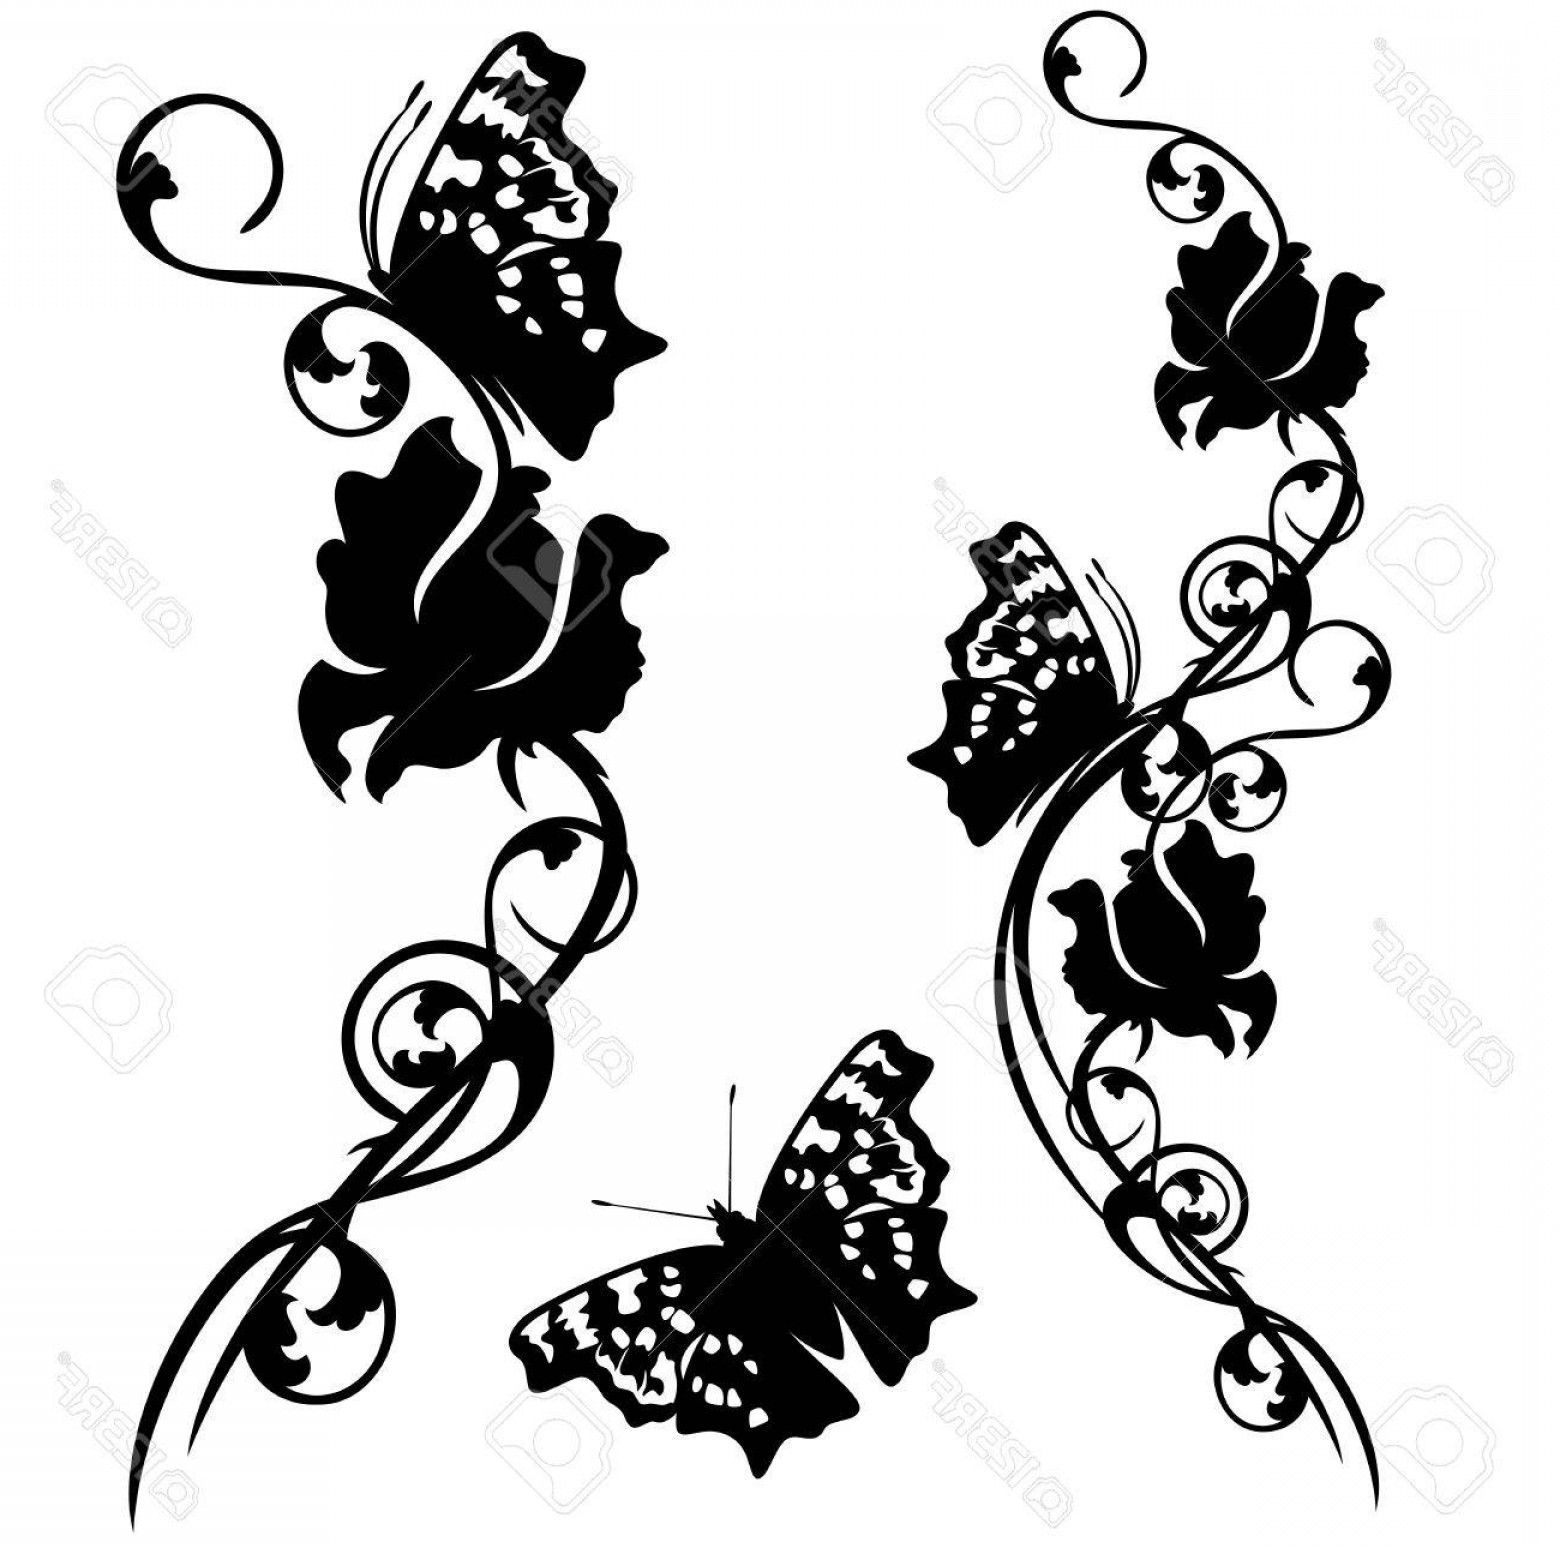 Butter Fly And Flower Vector Black And White: Photostock Vector Floral Motif With Butterflies Rose Flowers Black And White Design Set